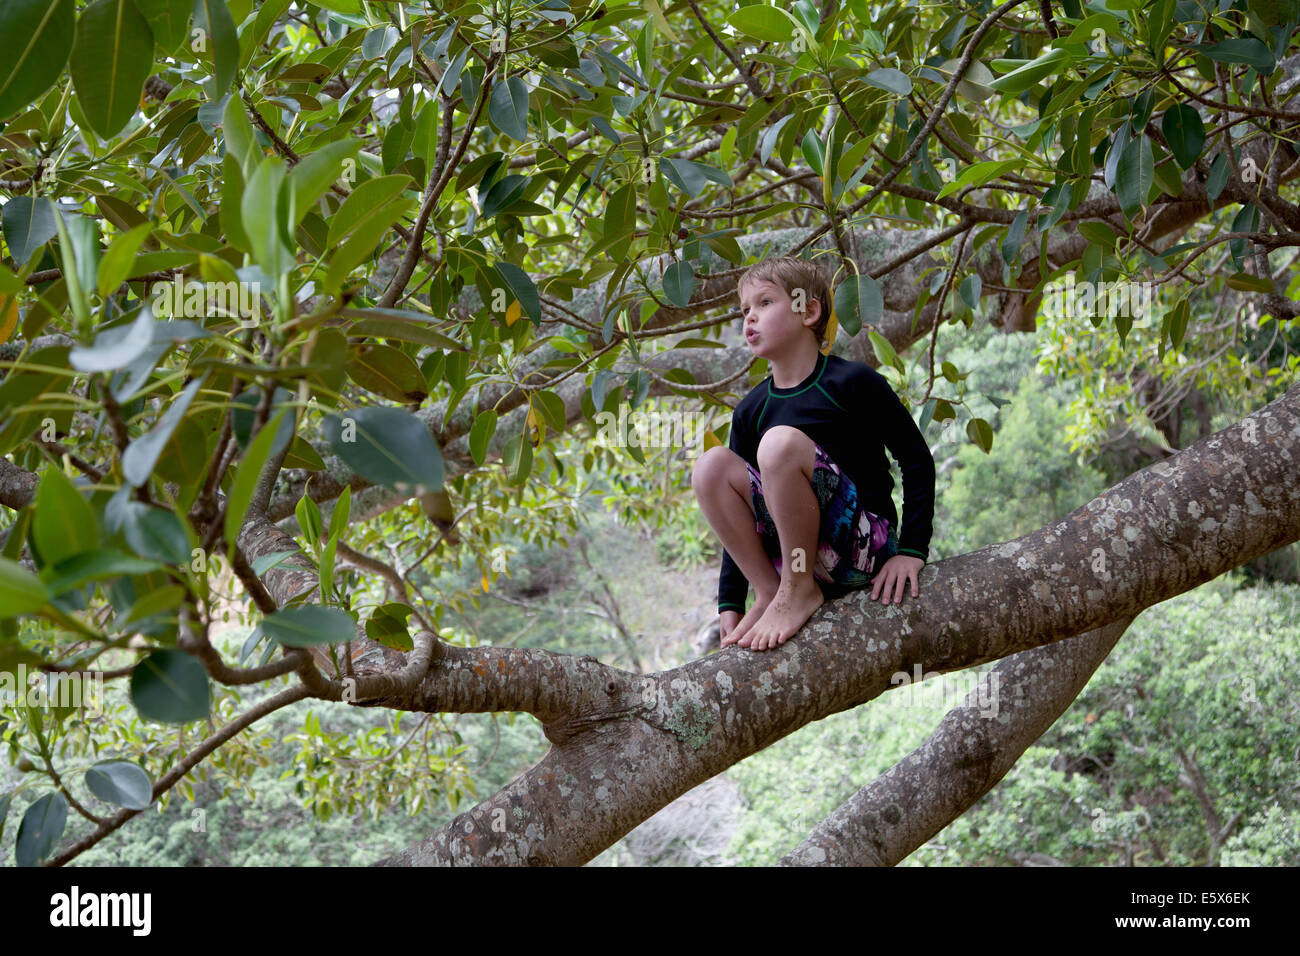 Boy sitting in tree and gazing - Stock Image